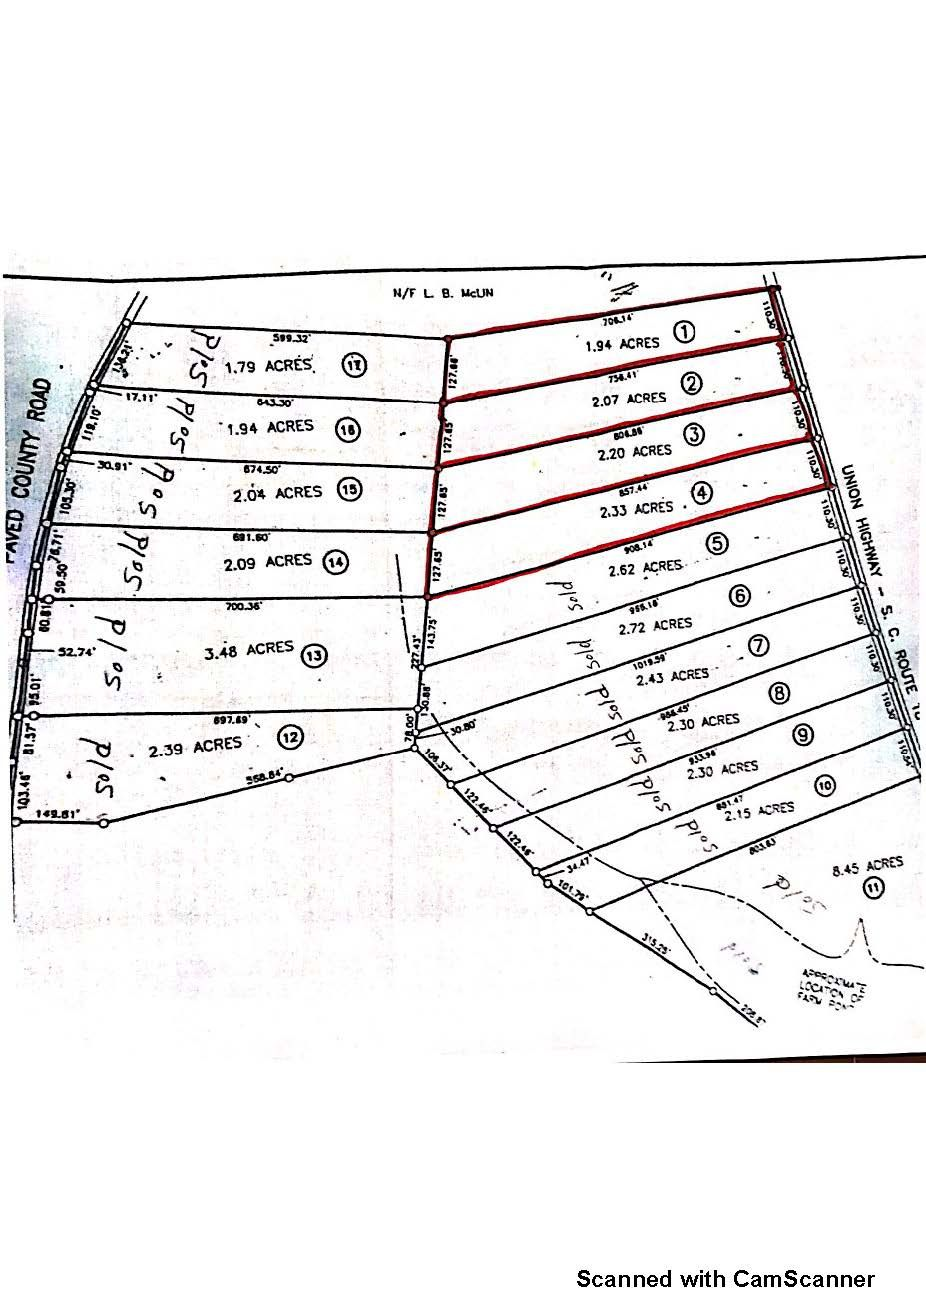 6240 Union Hwy, Pacolet, SC 29372 - Lot/Land | Trulia